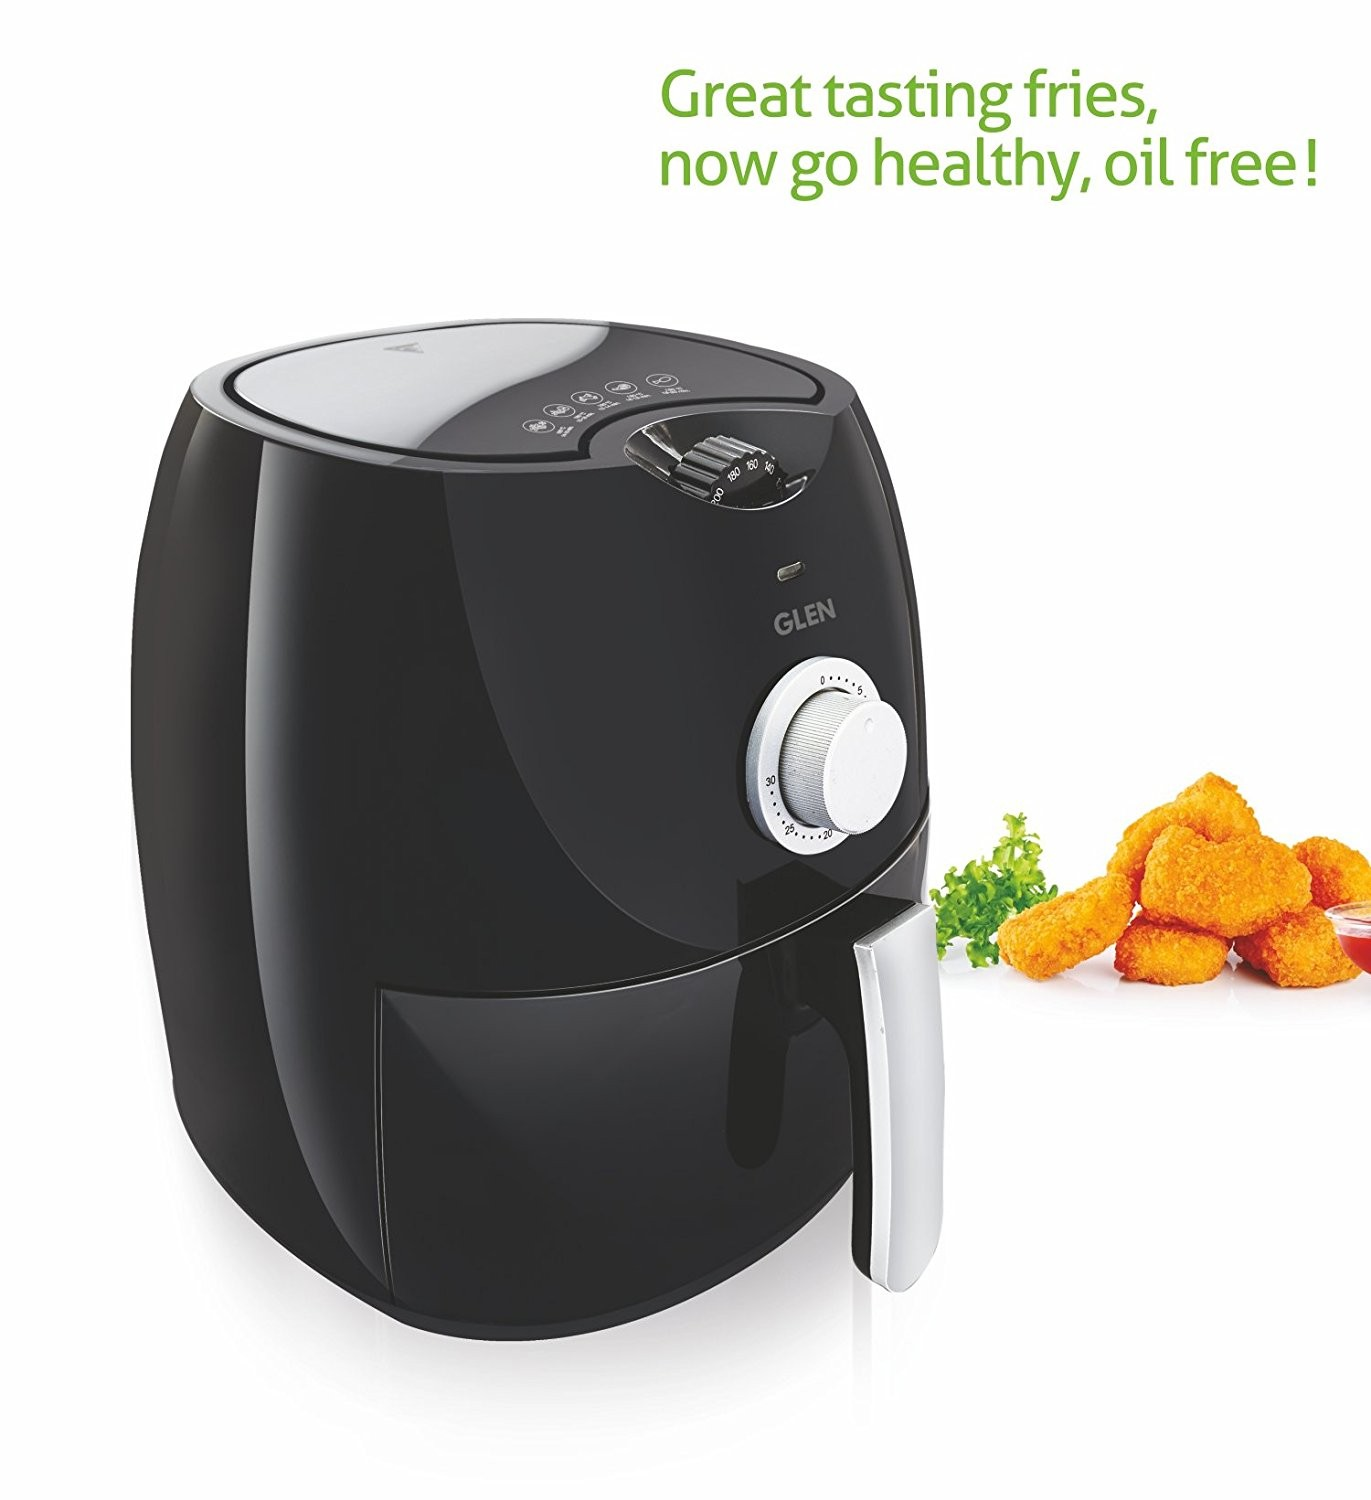 Glen Kitchen GL 3044 Air Fryer (Black) - 2 Year Warranty - Upto 80% Less Fat, Cooking Capacity 2.8 litres, 1350 Watt